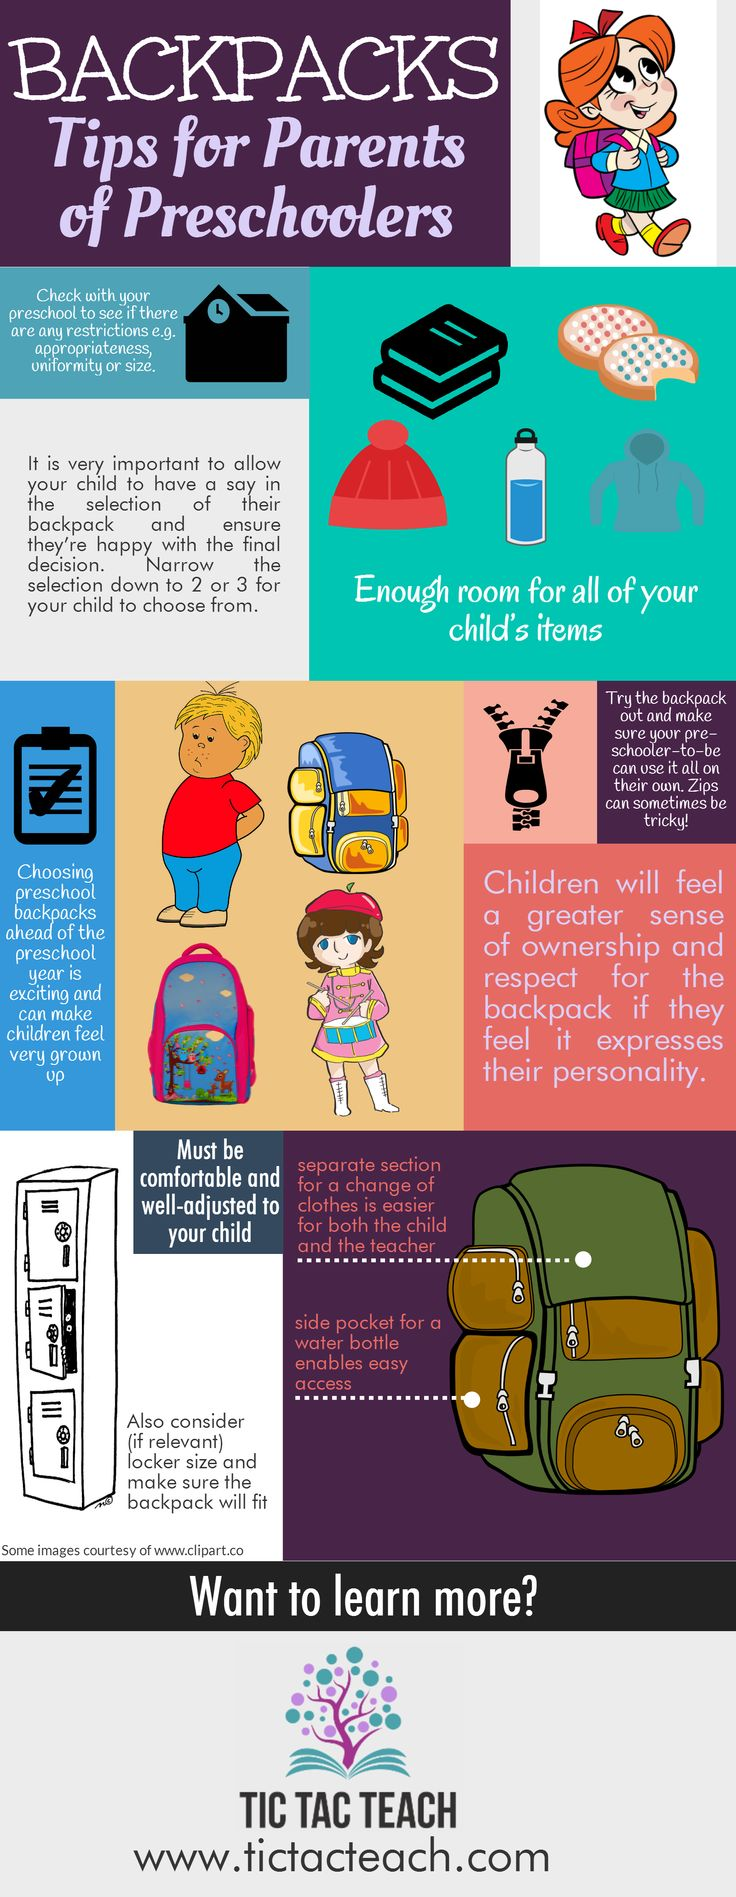 What should you look for when buying a backpack for your child when they are starting preschool?   Read more here: http://tictacteach.com/backpacks-for-kids/